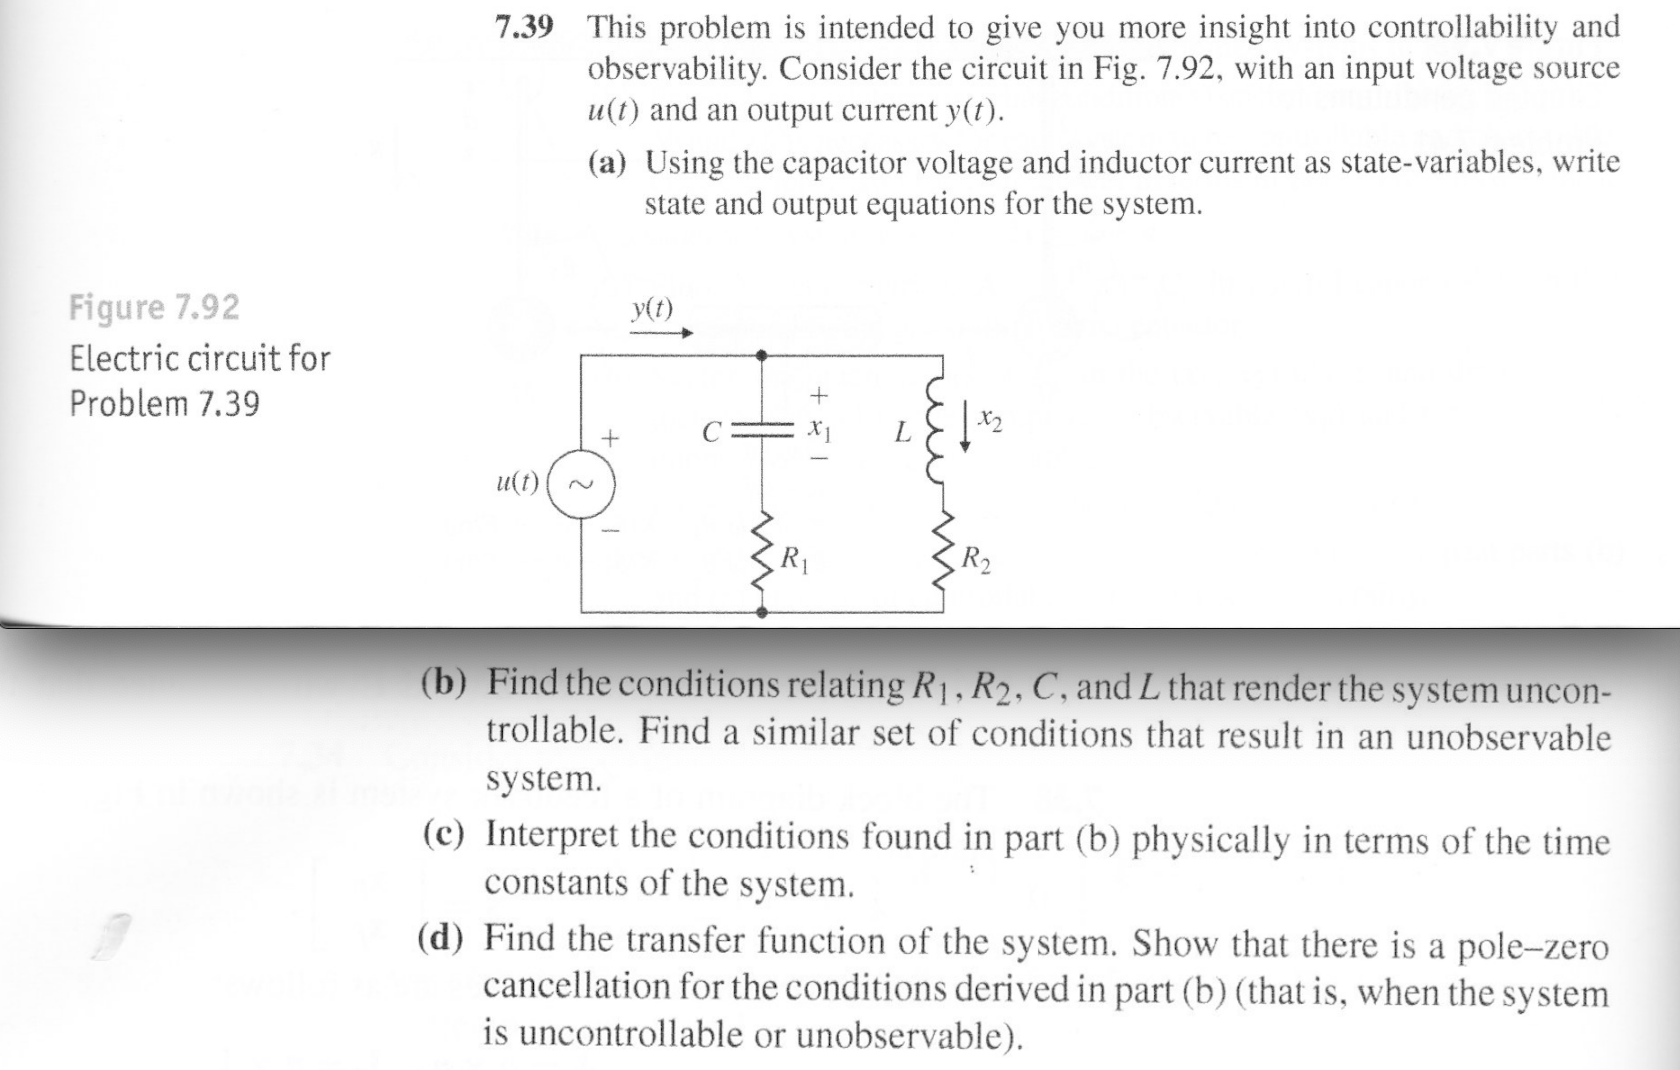 7.39 This problem is intended to give you more insight into controllability and observability. Consider the circuit in Fig. 7.92, with an input voltage u(t) and an output current y(t). Source (a) Using the capacitor voltage and inductor current as state-variables, write state and output equations for the system Figure 7.92 y(t) Electric circuit for Problem 7.39 + u(t) R2 (b) Find the conditions relating R1, R2, C, and L that render the system uncon- trollable. Find a similar set of conditions that result in an unobservable system (c) Interpret the conditions found in part (b) physically in terms of the time constants of the system (d) Find the transfer function of the system. Show that there is a pole-zero cancellation for the conditions derived in part (b) (that is, when the system is uncontrollable or unobservable)